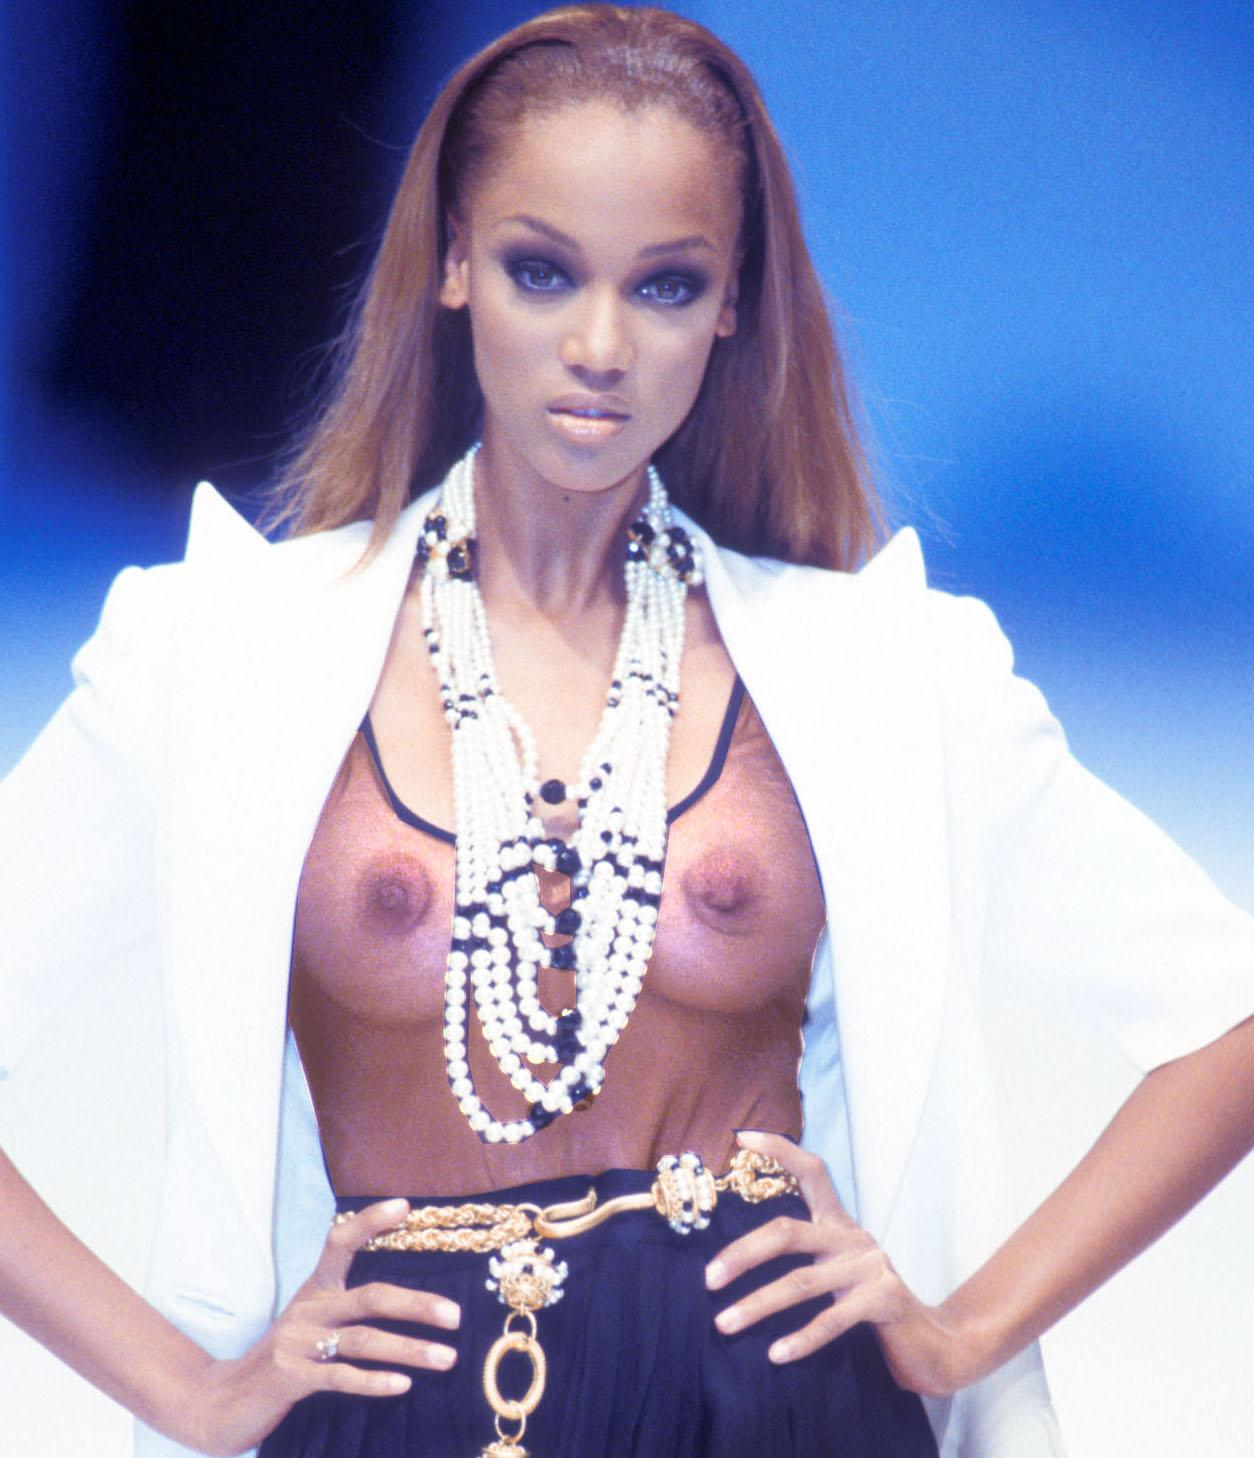 from Hank sexy tyra banks naked